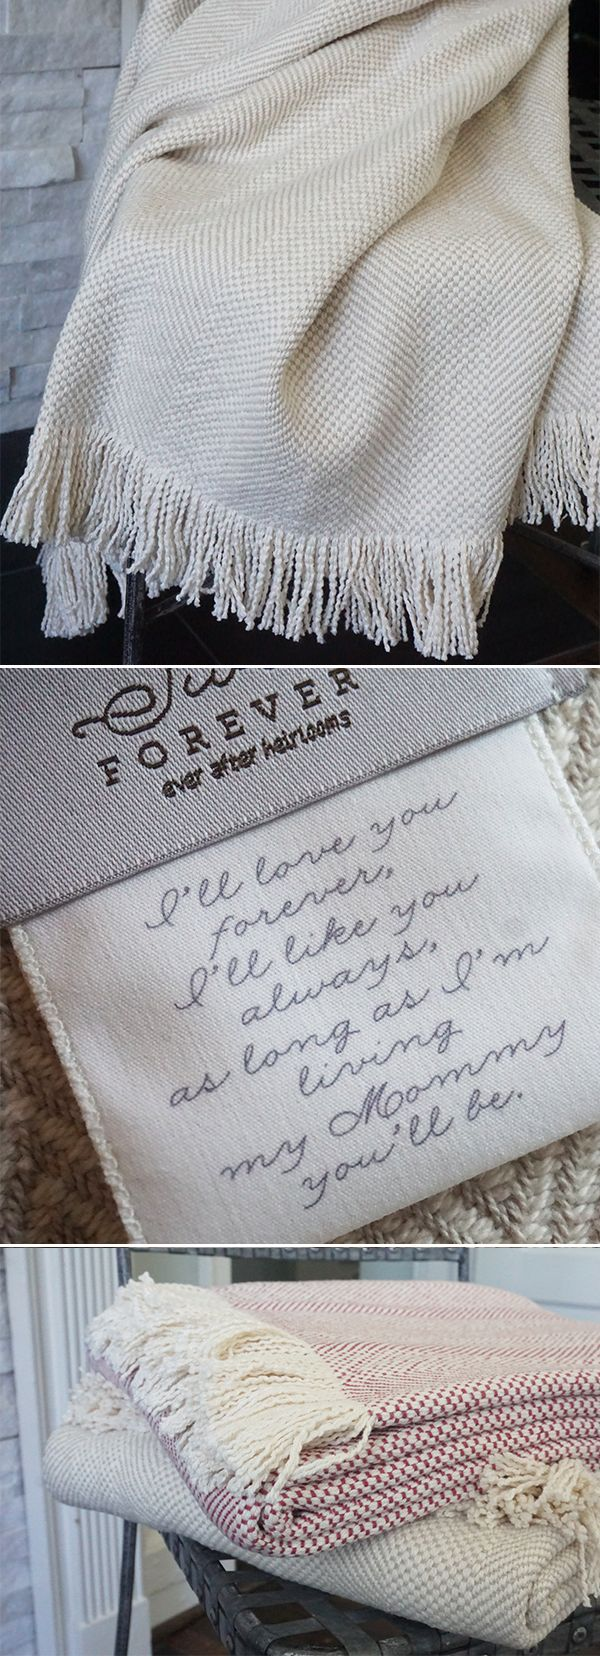 The Olivia Forever Blanket {throw} New from Swell Forever. American Made heirloom blankets for the home. Personalized message tags and monograms available. I'll love your forever. I'll like you always. 100% cotton. Machine washable. Beautiful gifts that give back. For mom, girlfriend, grandmother, sister, best friend, couples, weddings, anniversaries, mother of the bride, mother of the groom, etc. Unique gift ideas with heart. Unique bridesmade gift ideas.